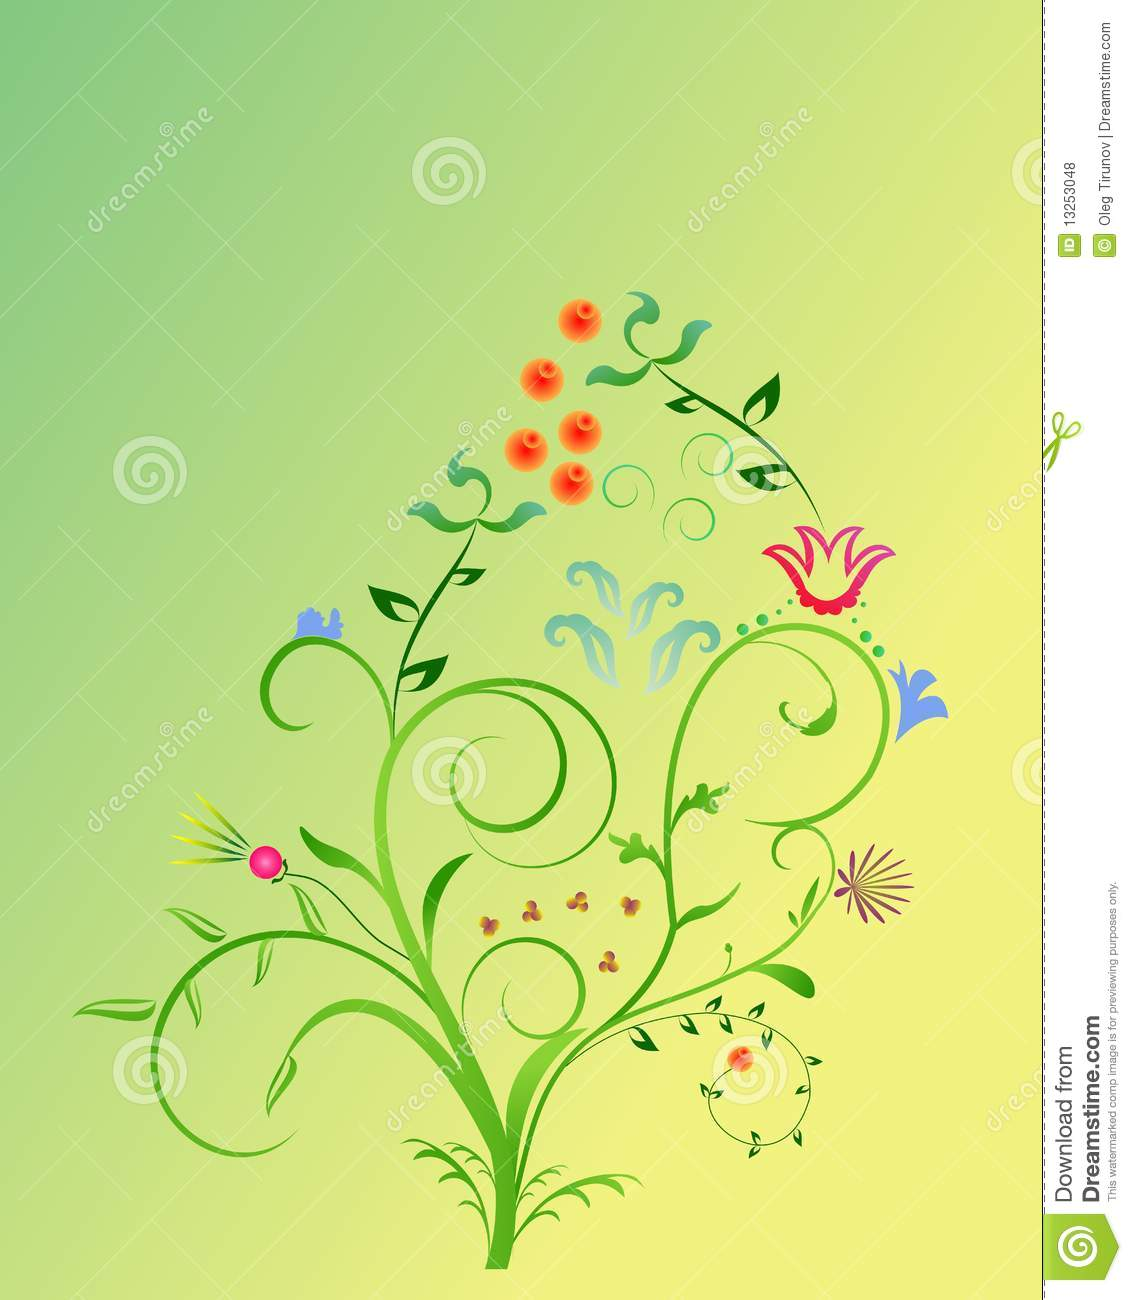 Abstract Spring Floral Background For Design Stock Vector